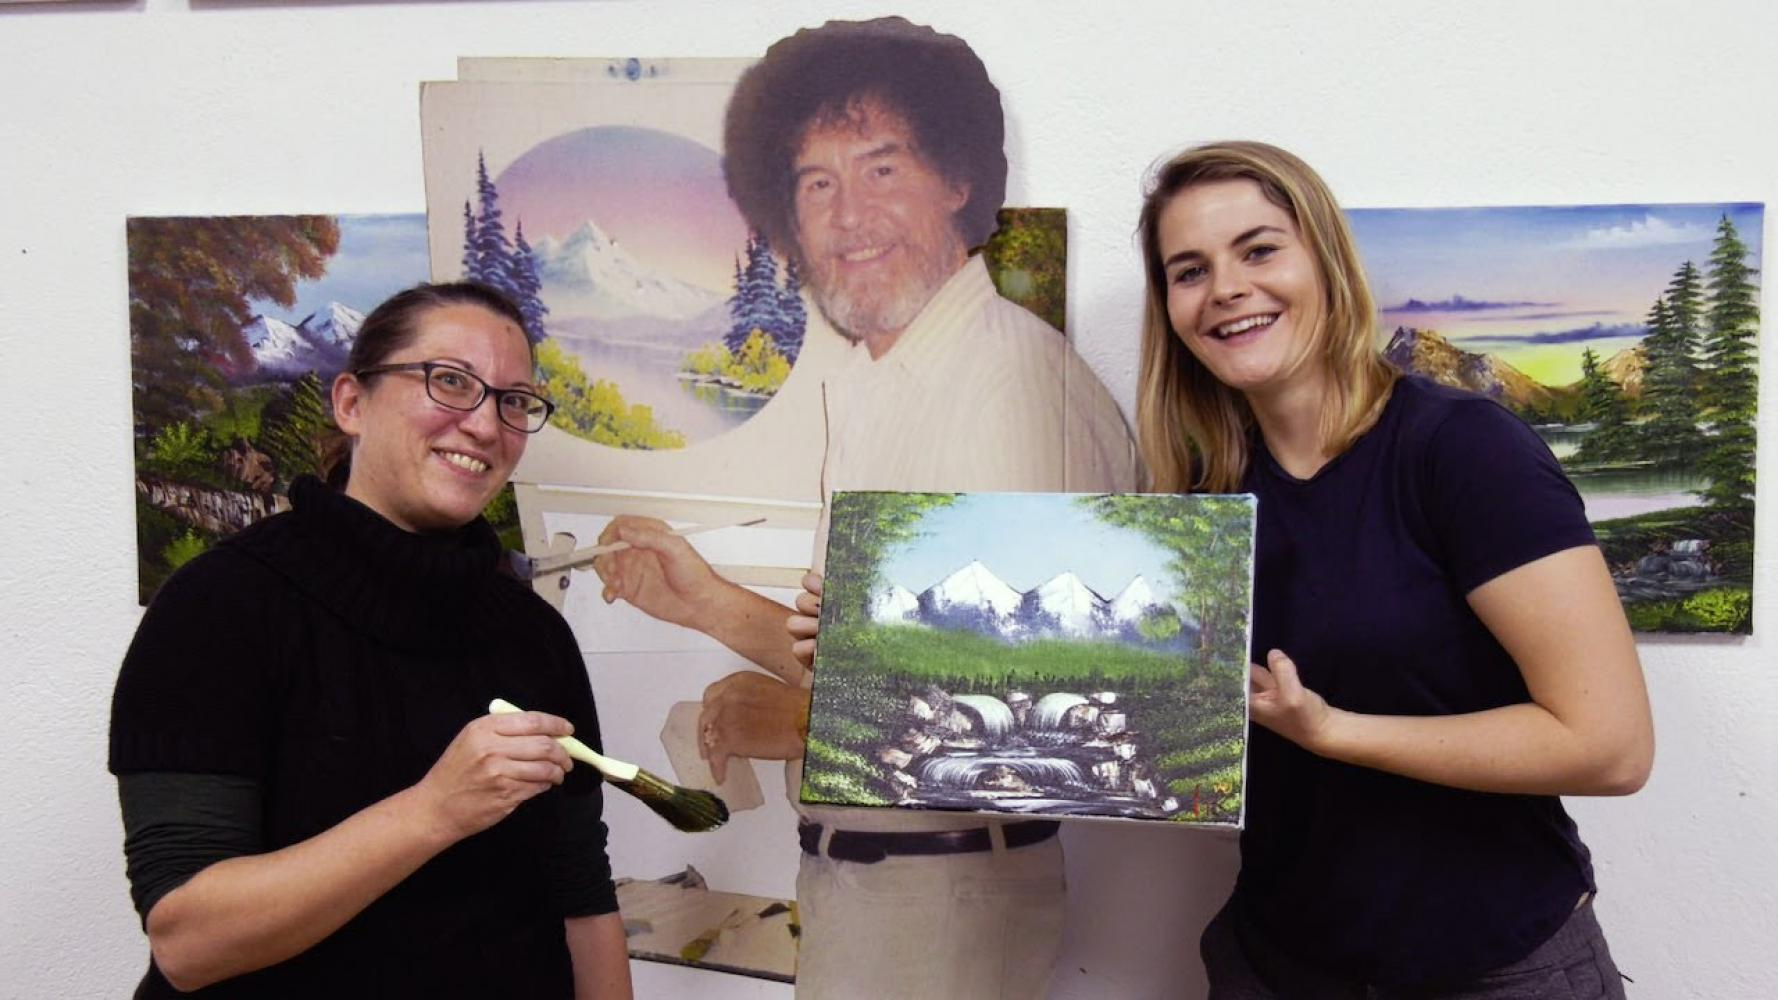 Bob Ross The Joy Of Painting Waterfall Wonder